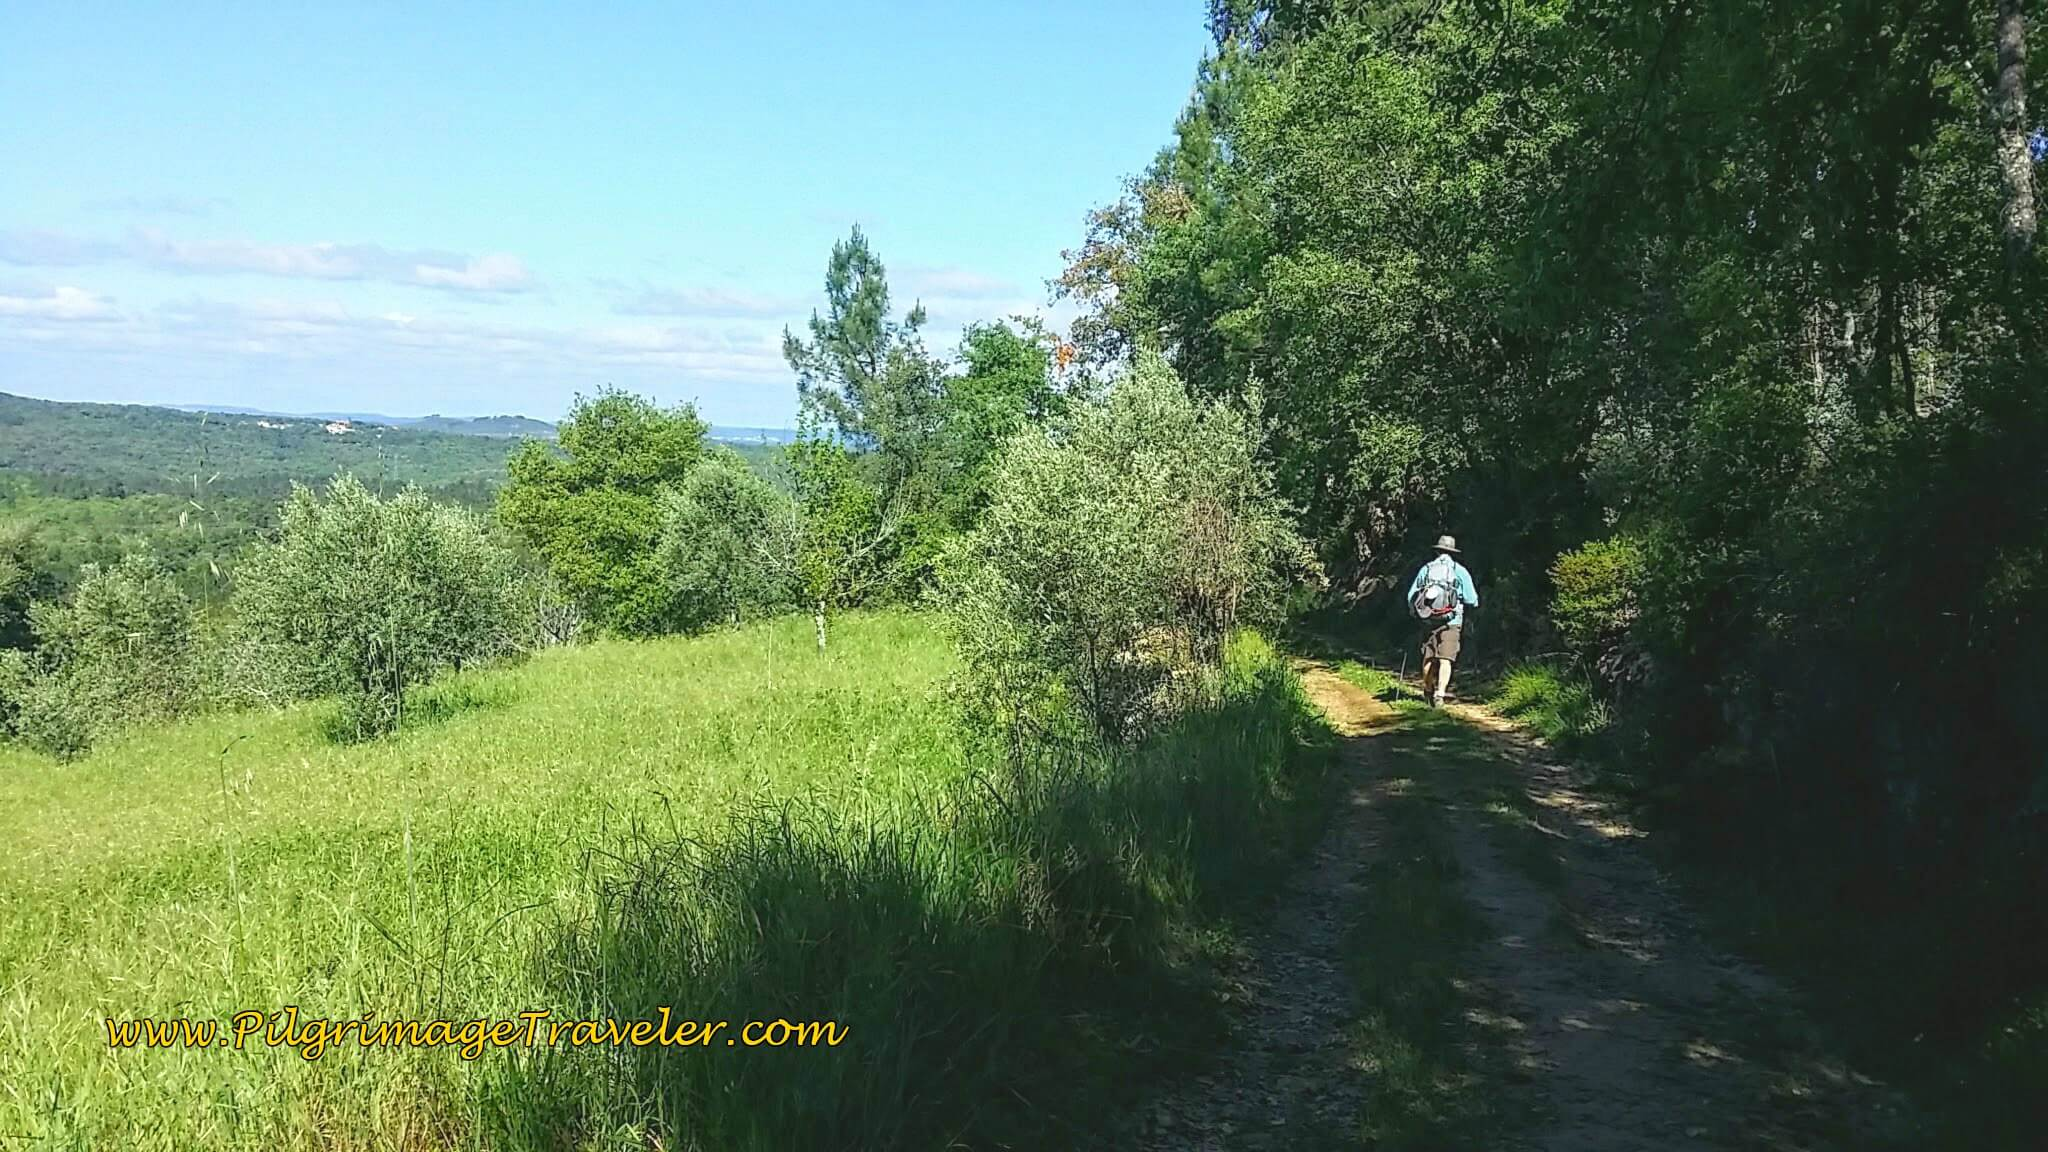 Clearing in the Forest on the Portuguese Camino